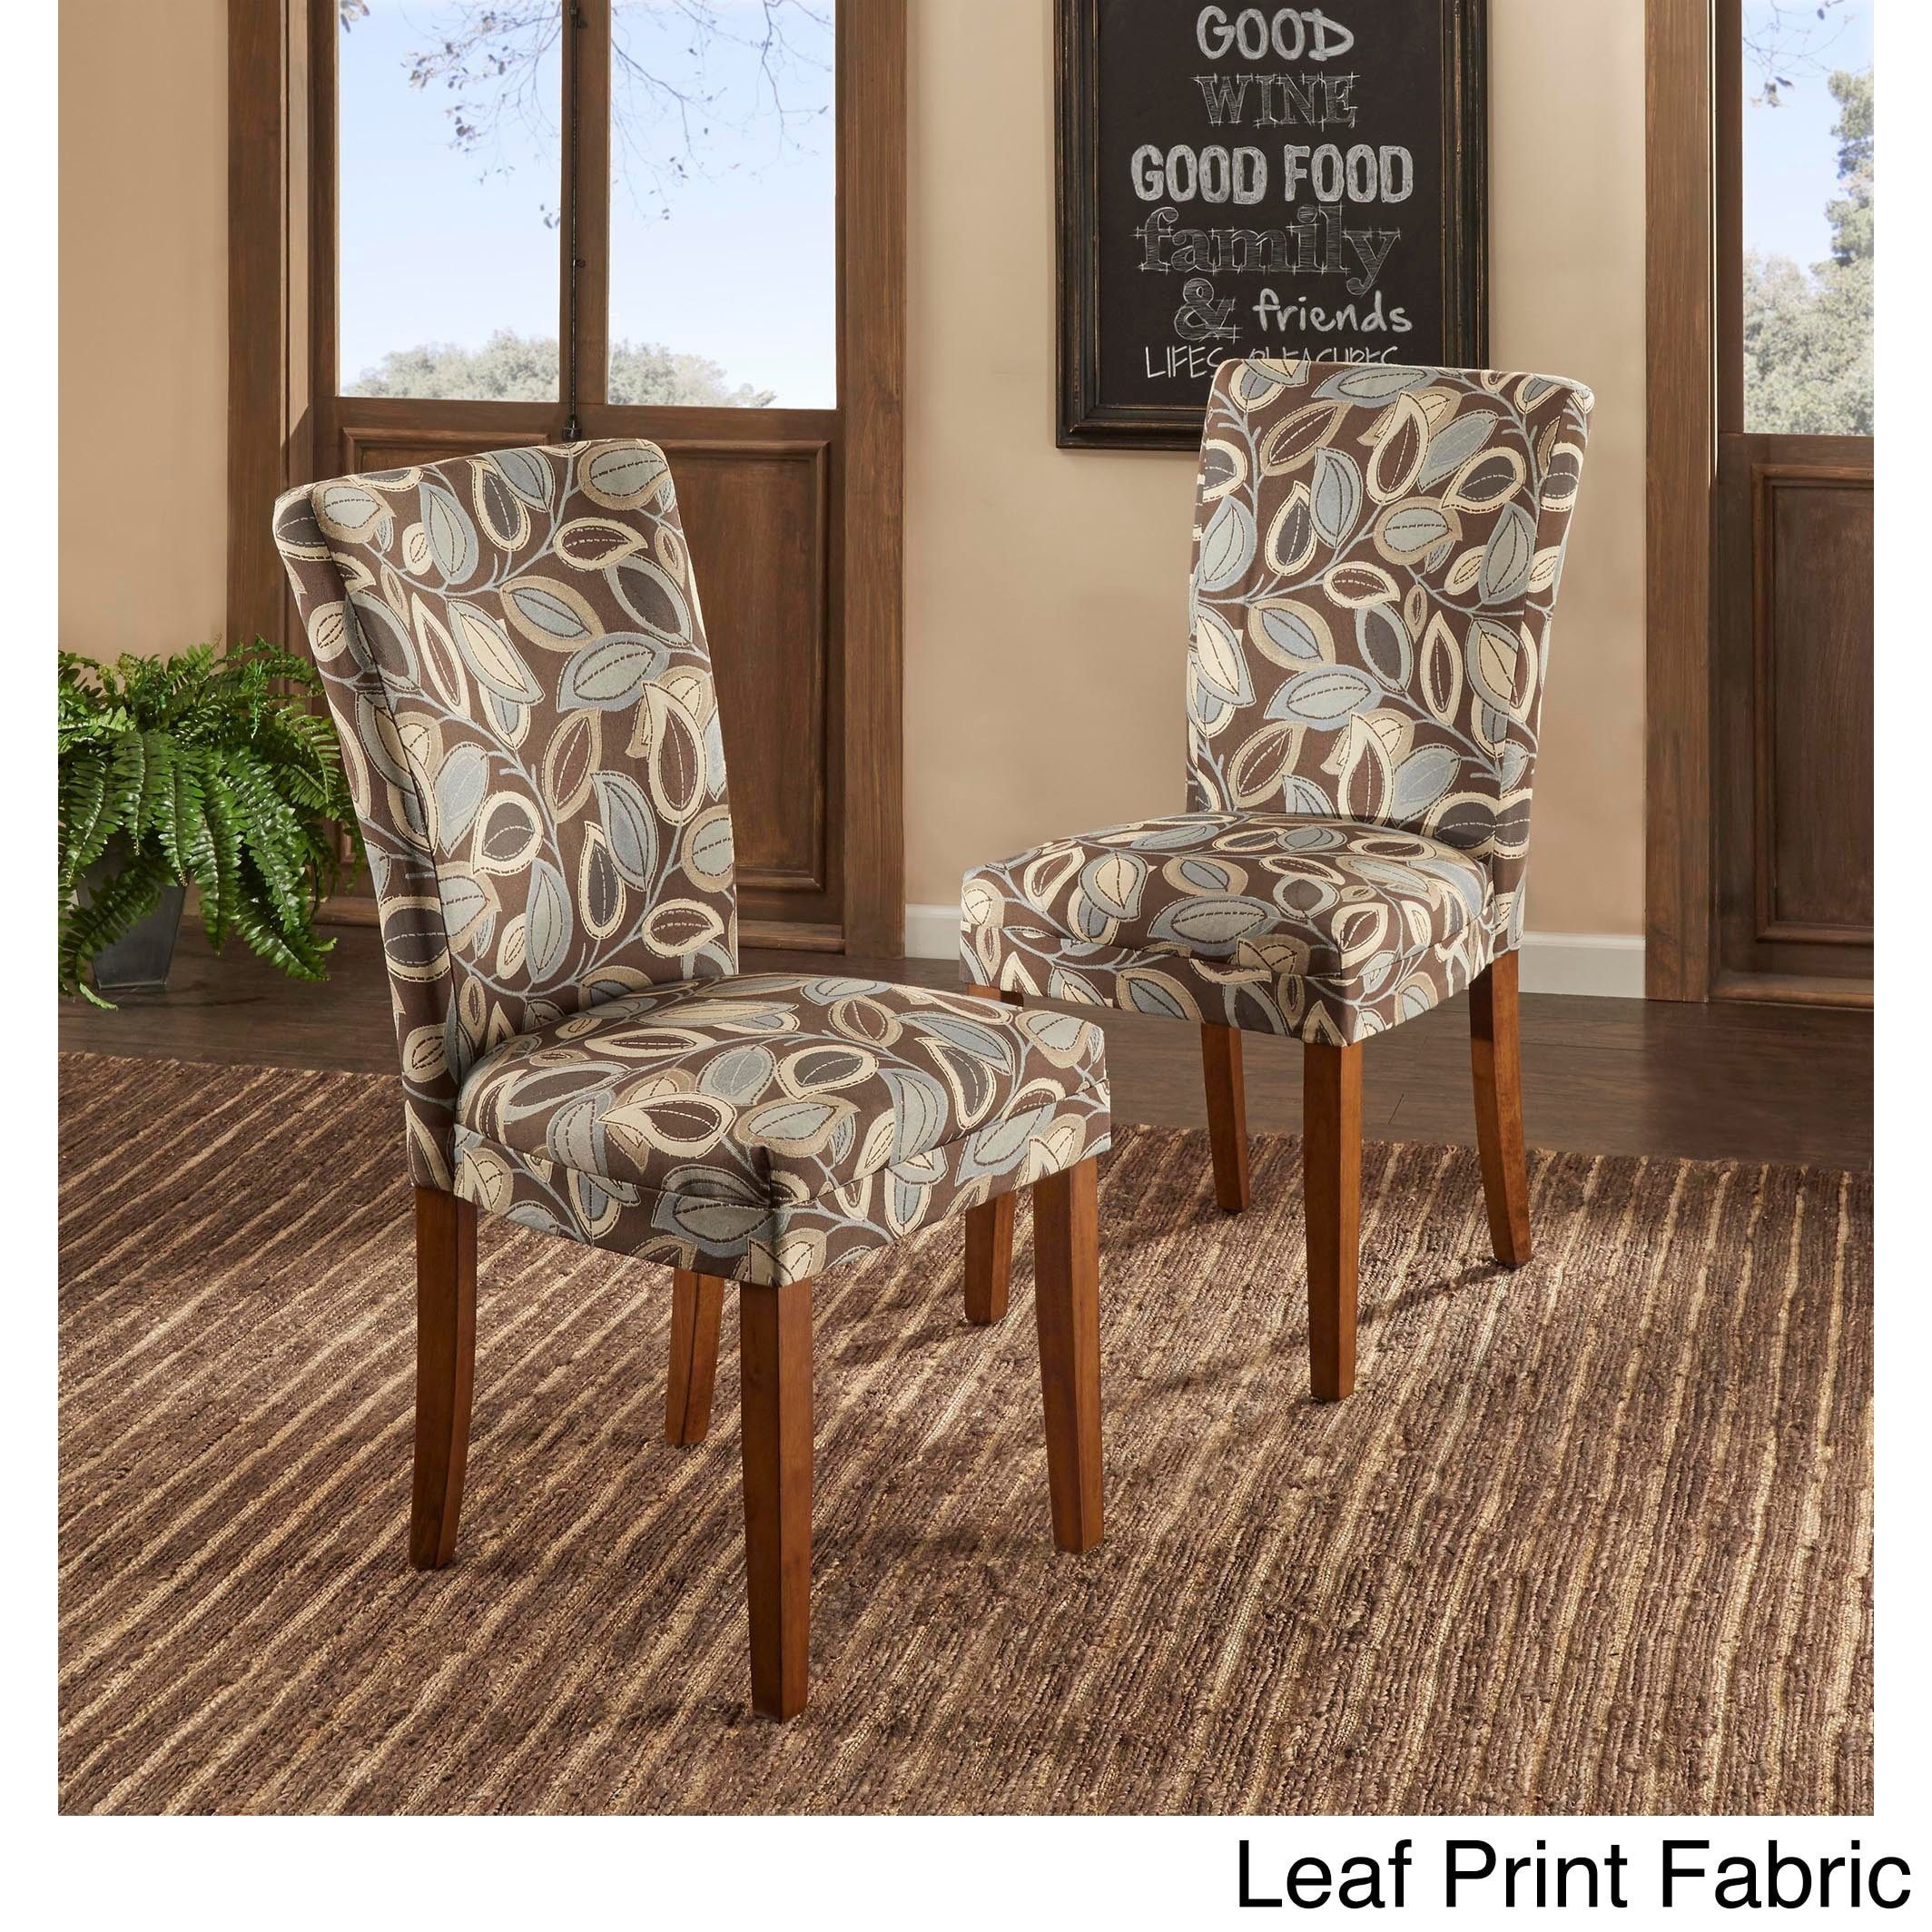 Parson Classic Upholstered Dining Chair (Set of 2) by Tribecca Home (Leaf Print Fabric), Grey (Microfiber)